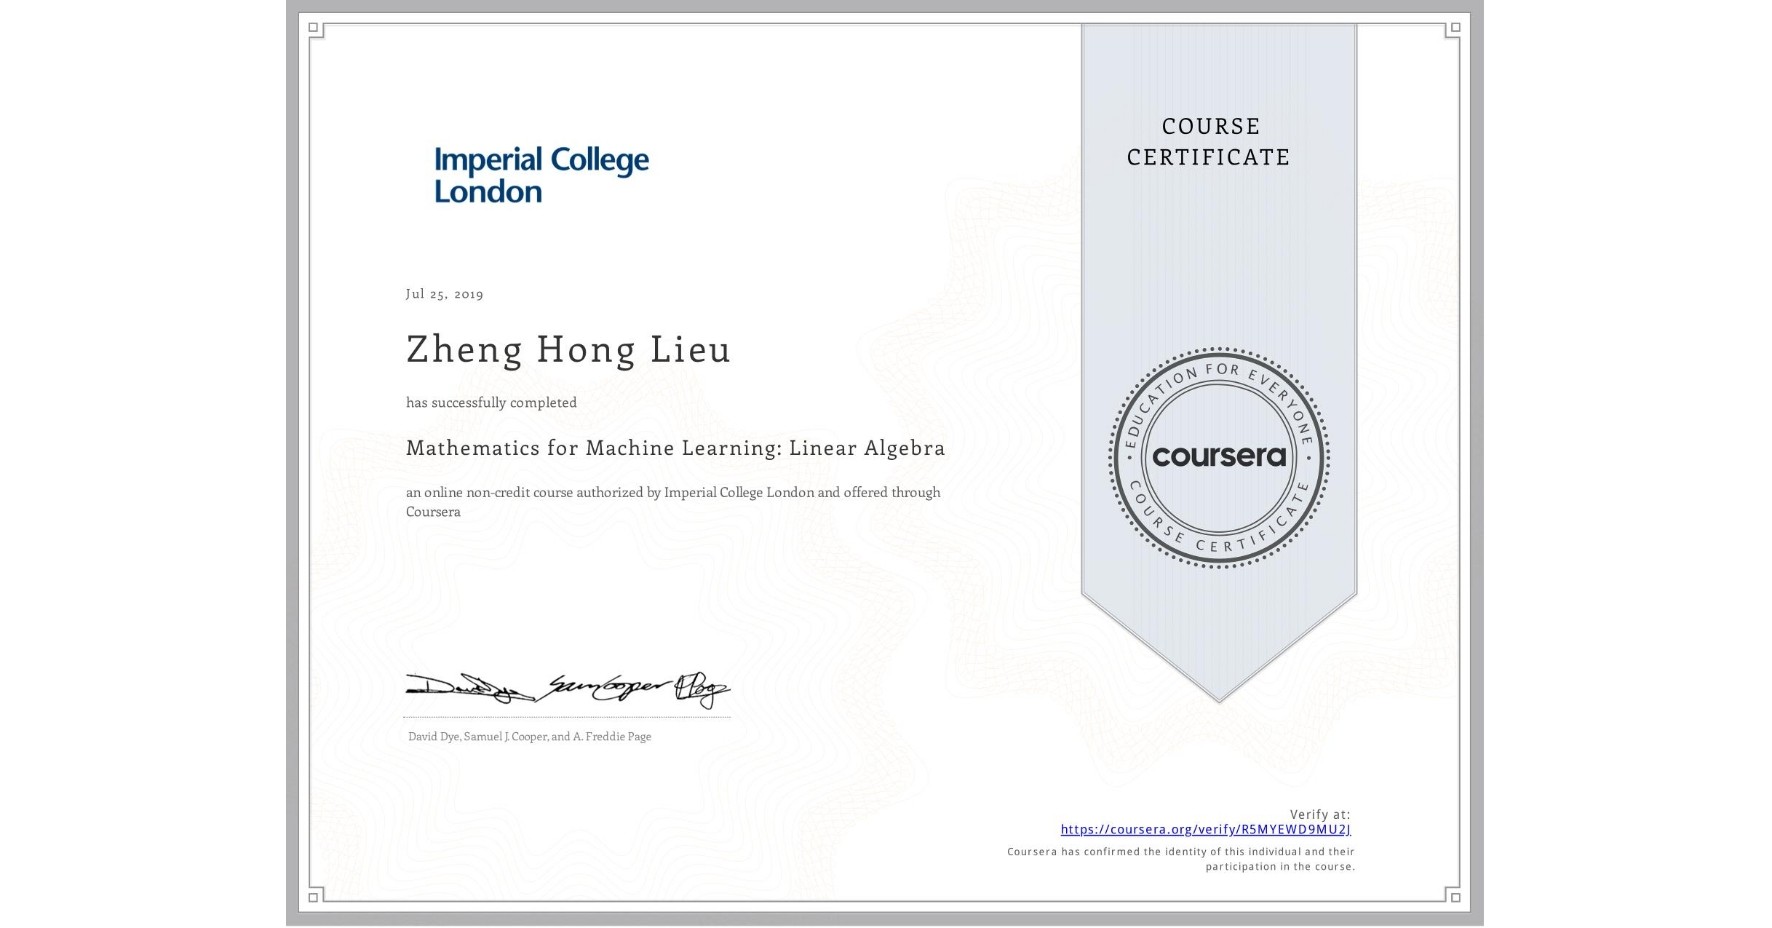 View certificate for Zheng Hong  Lieu, Mathematics for Machine Learning: Linear Algebra, an online non-credit course authorized by Imperial College London and offered through Coursera